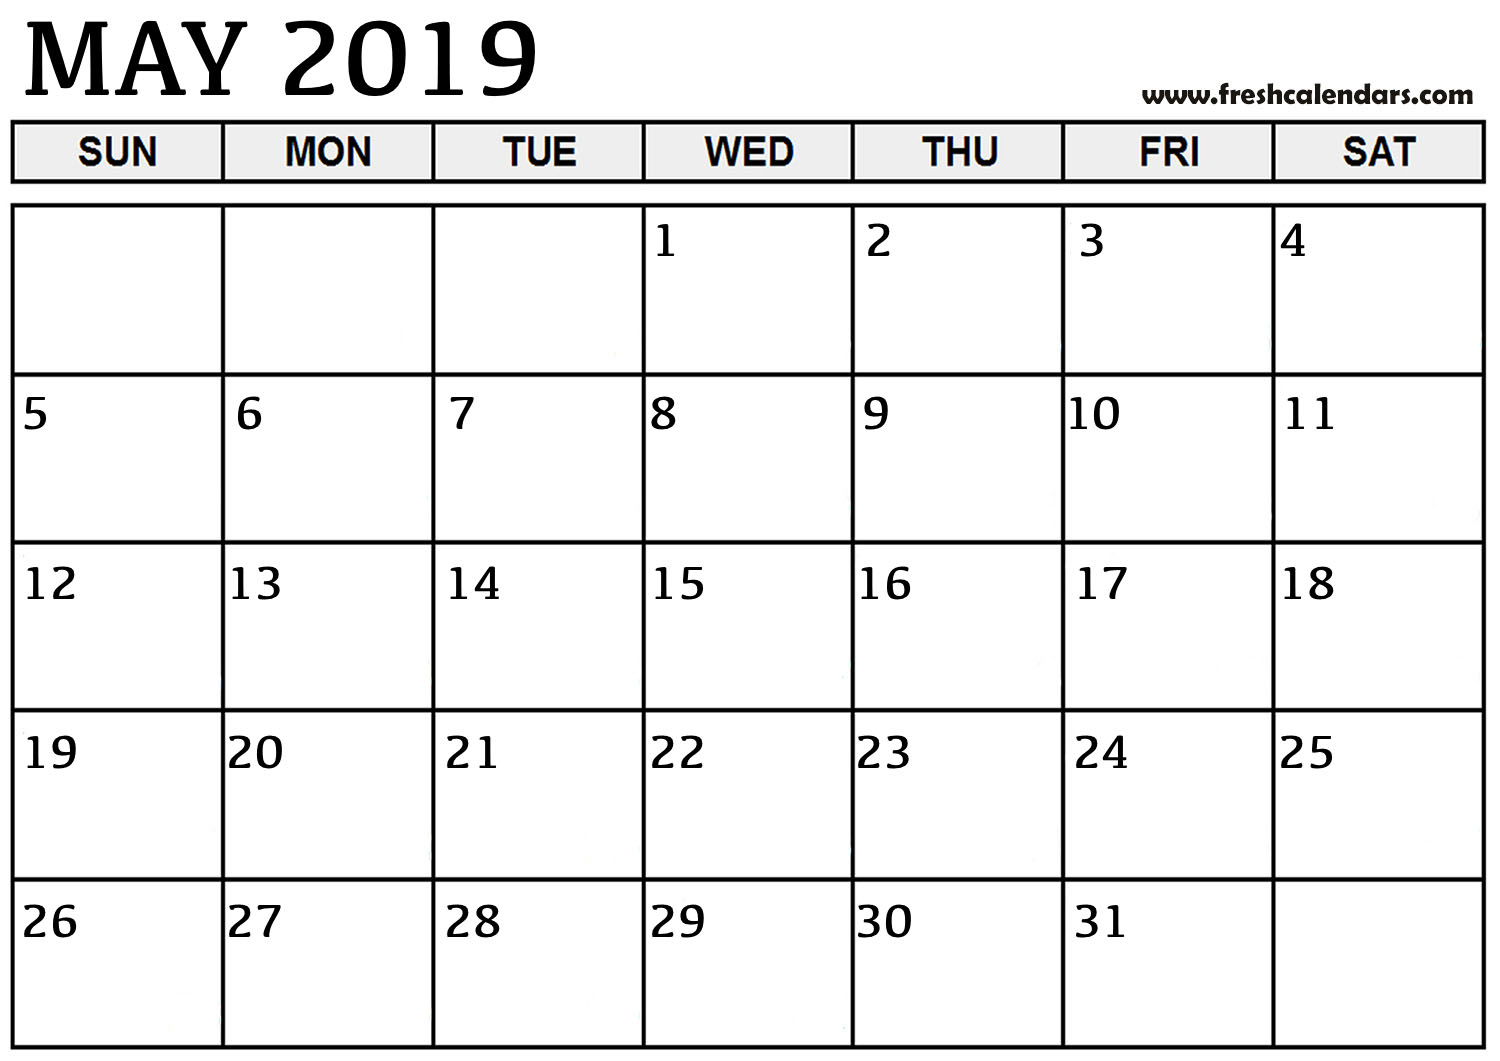 May 2019 Calendar Basic Template